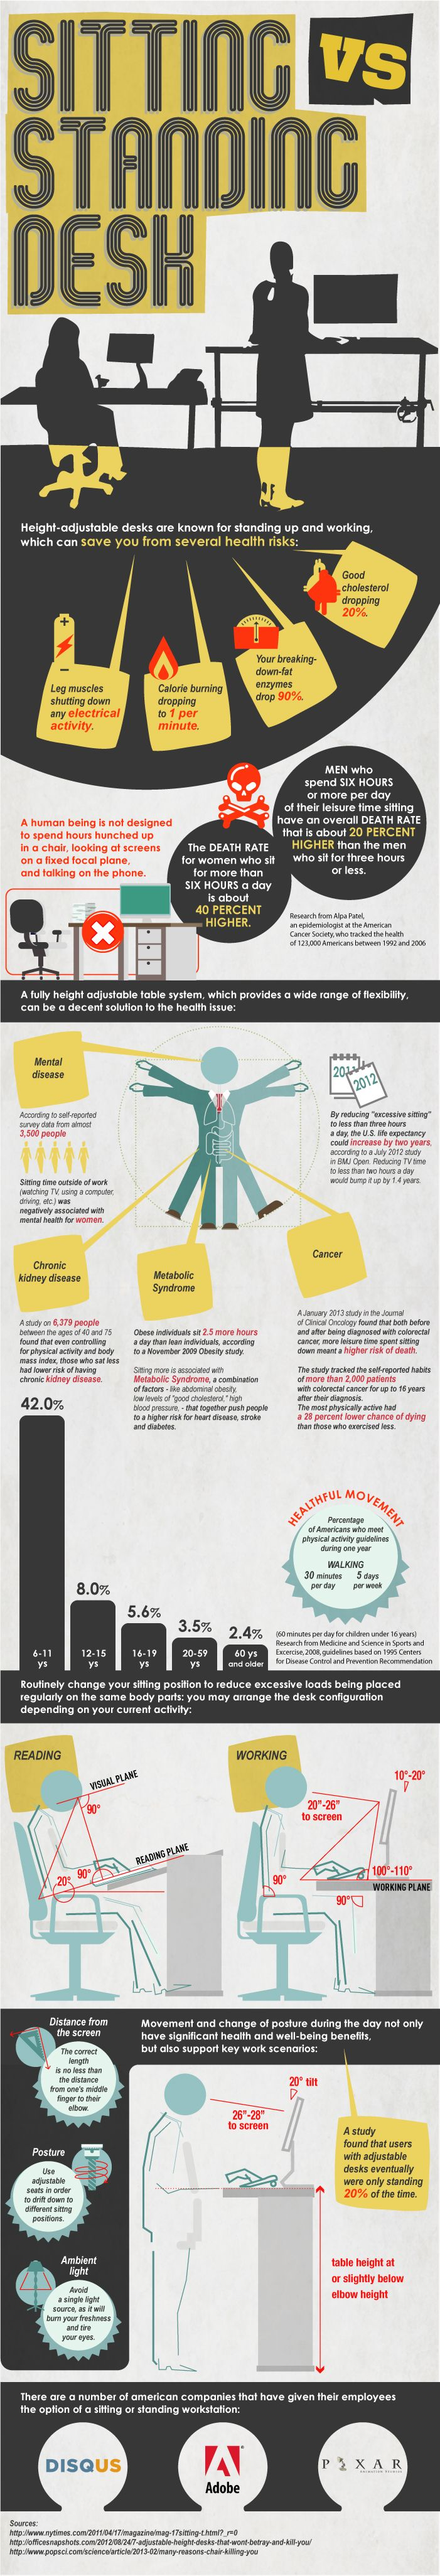 Health Benefits Of Using A Standing Desk At Work Jul 7 13 Infographic Health Office Health Infographic